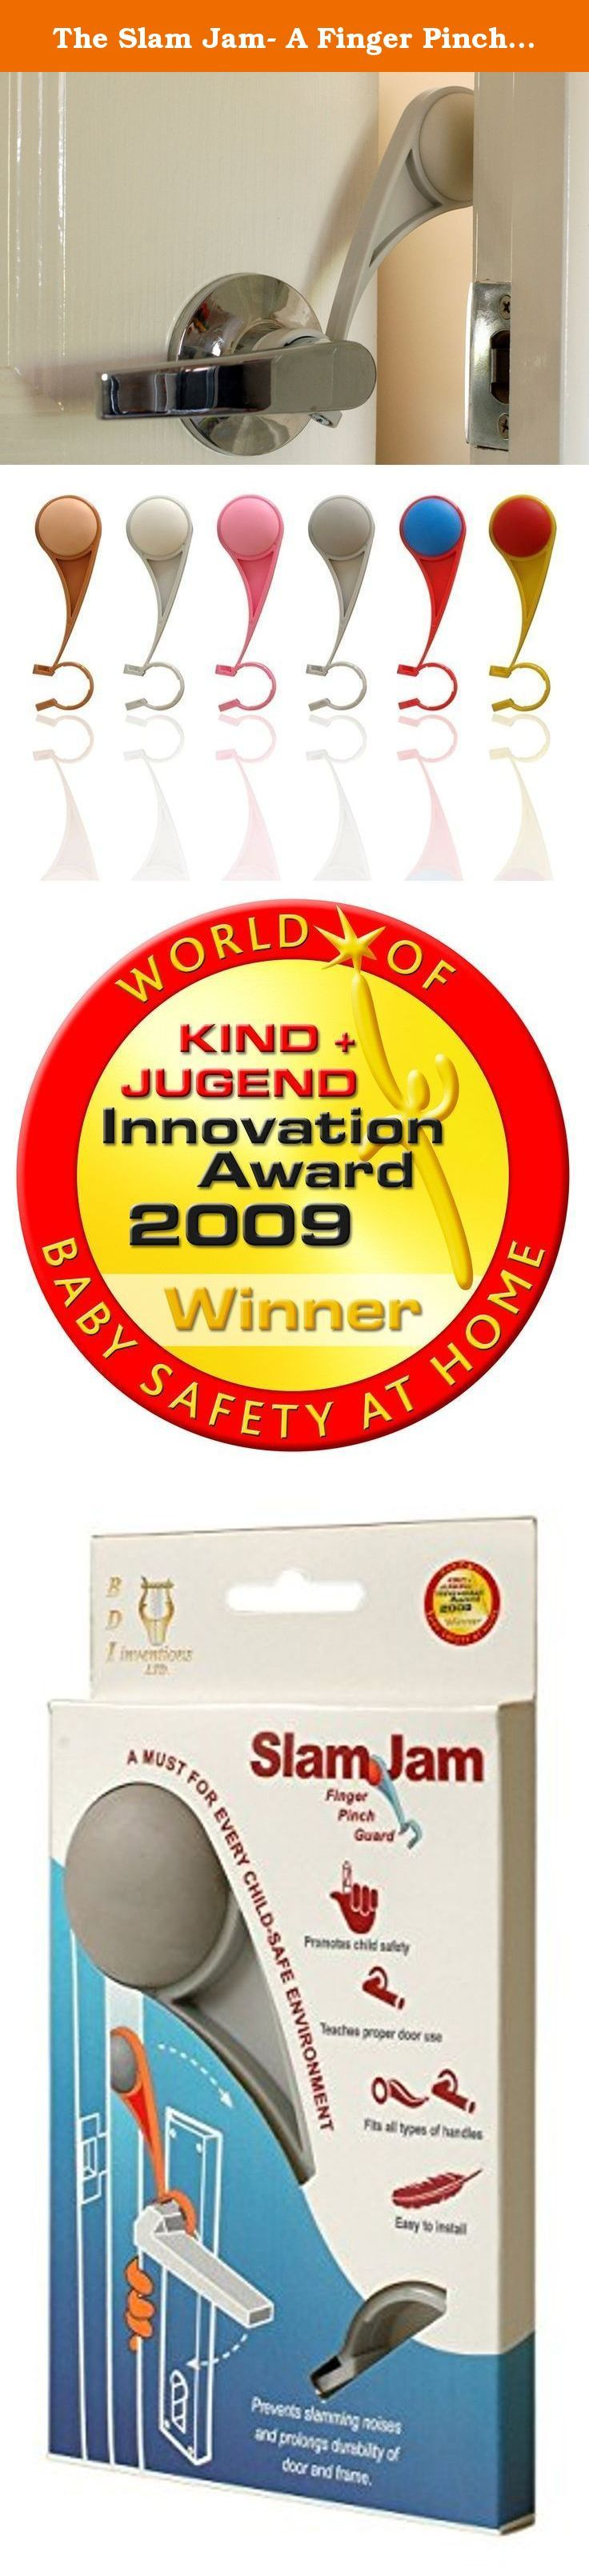 The Slam Jam- A Finger Pinch Guard that Prevents Baby-Children-Adult Fingers Getting Caught in Doors. Winner of the Best Safety At Home Product at the Kind&Jugend Fair, Germany.(Grey). Prevent slamming doors on fingers. When the door opens, the slam jam create a gap between the door and the fram and prevent the door to be slammed on fingers. To allow the door to be closed, rotate the handle of the door. Best Safety at home product in Germany Kind Jugend exhibition.